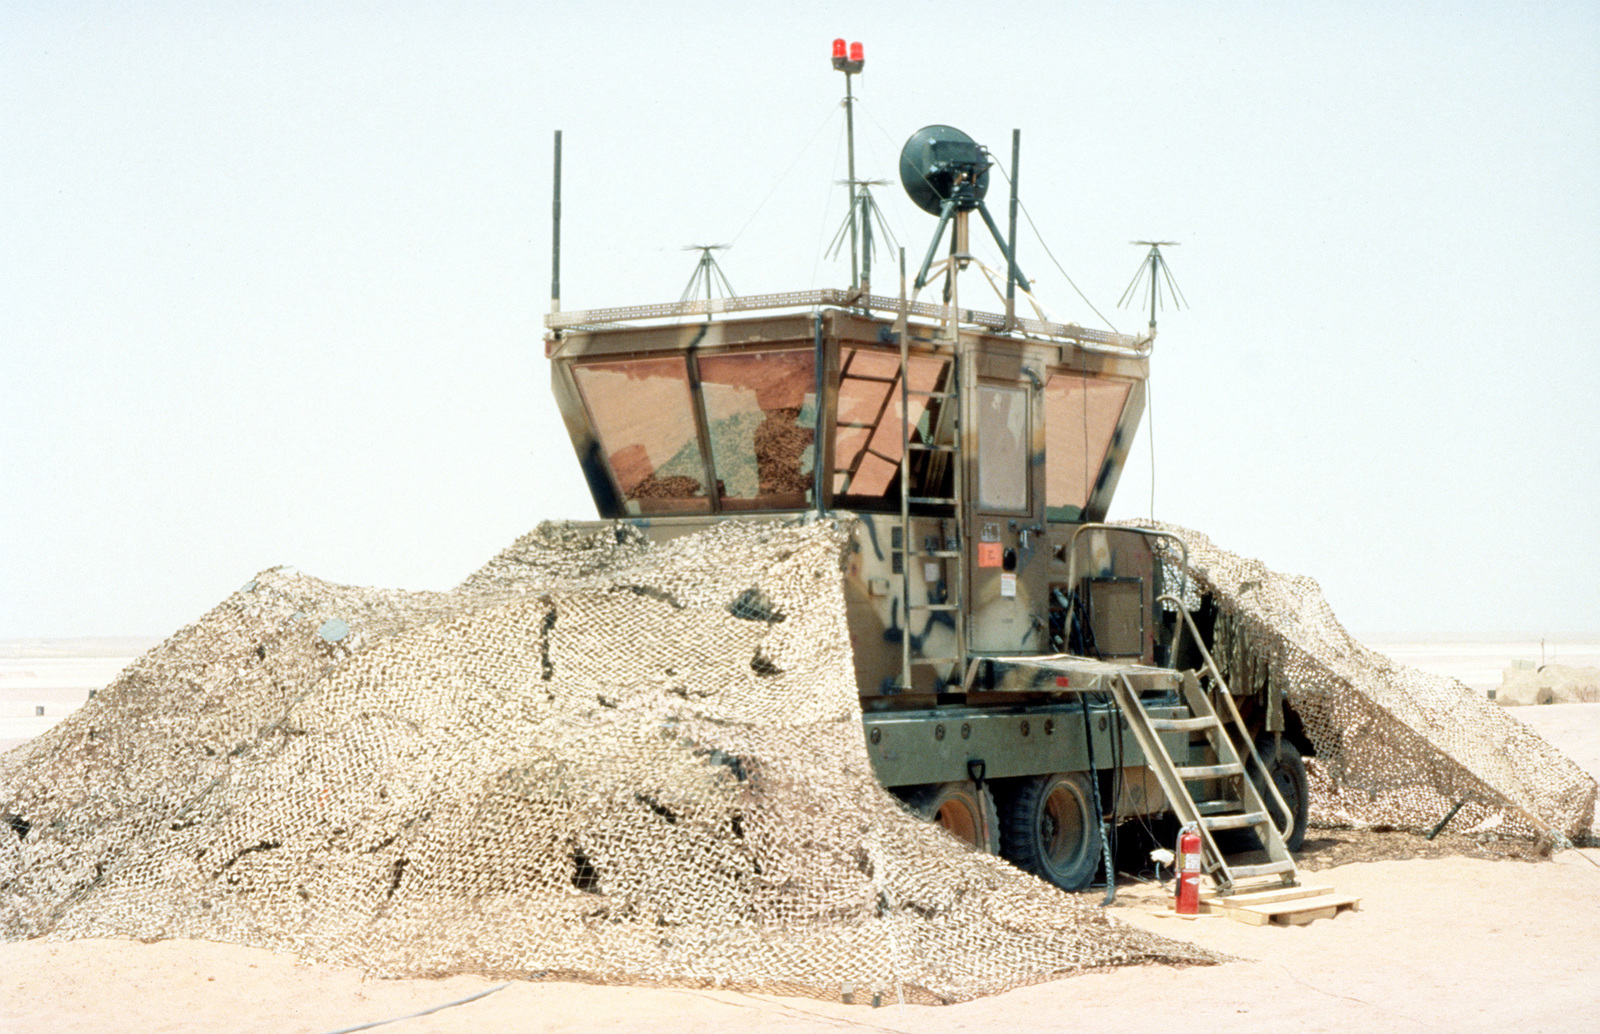 The TSW -7 Mobile Tower is operated by members of the 5th Combat Communications Group from Robbins Air Force Base Georgia. Soon this site will be controlling all arriving and departing aircraft bringing troops, equipment and supplies in support of the relocation of Operation Southern Watch and the 4404th Wing (Provisional) from Dhahran after a terrorist bomb attack killed 19 Air Force personnel